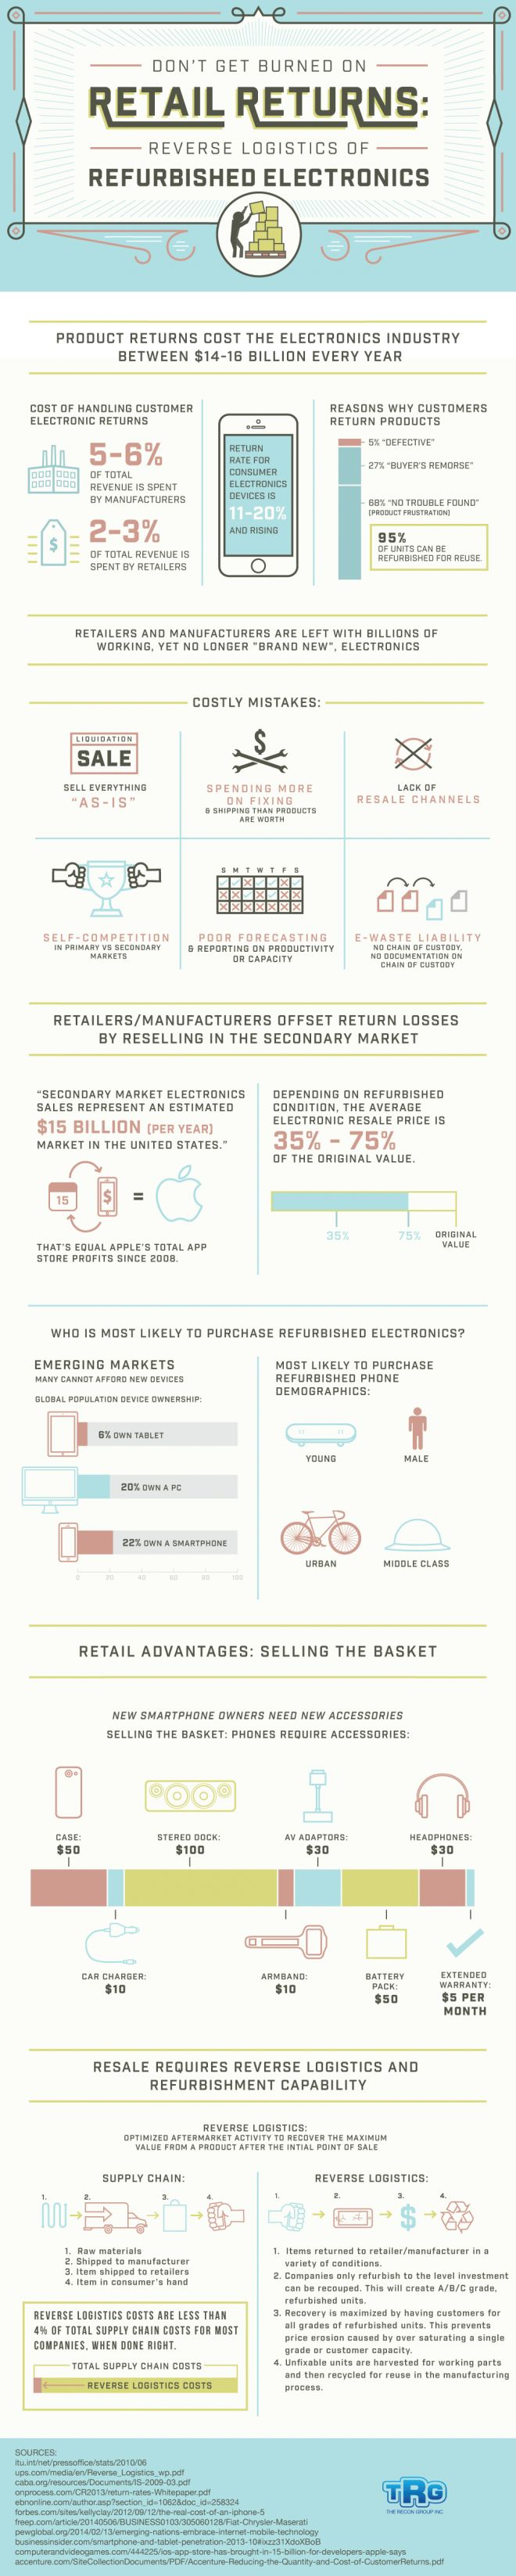 Don't Get Burned on Retail Returns   #Retail #Business | #Infographic repinned by @Piktochart | Create yours at www.piktochart.com